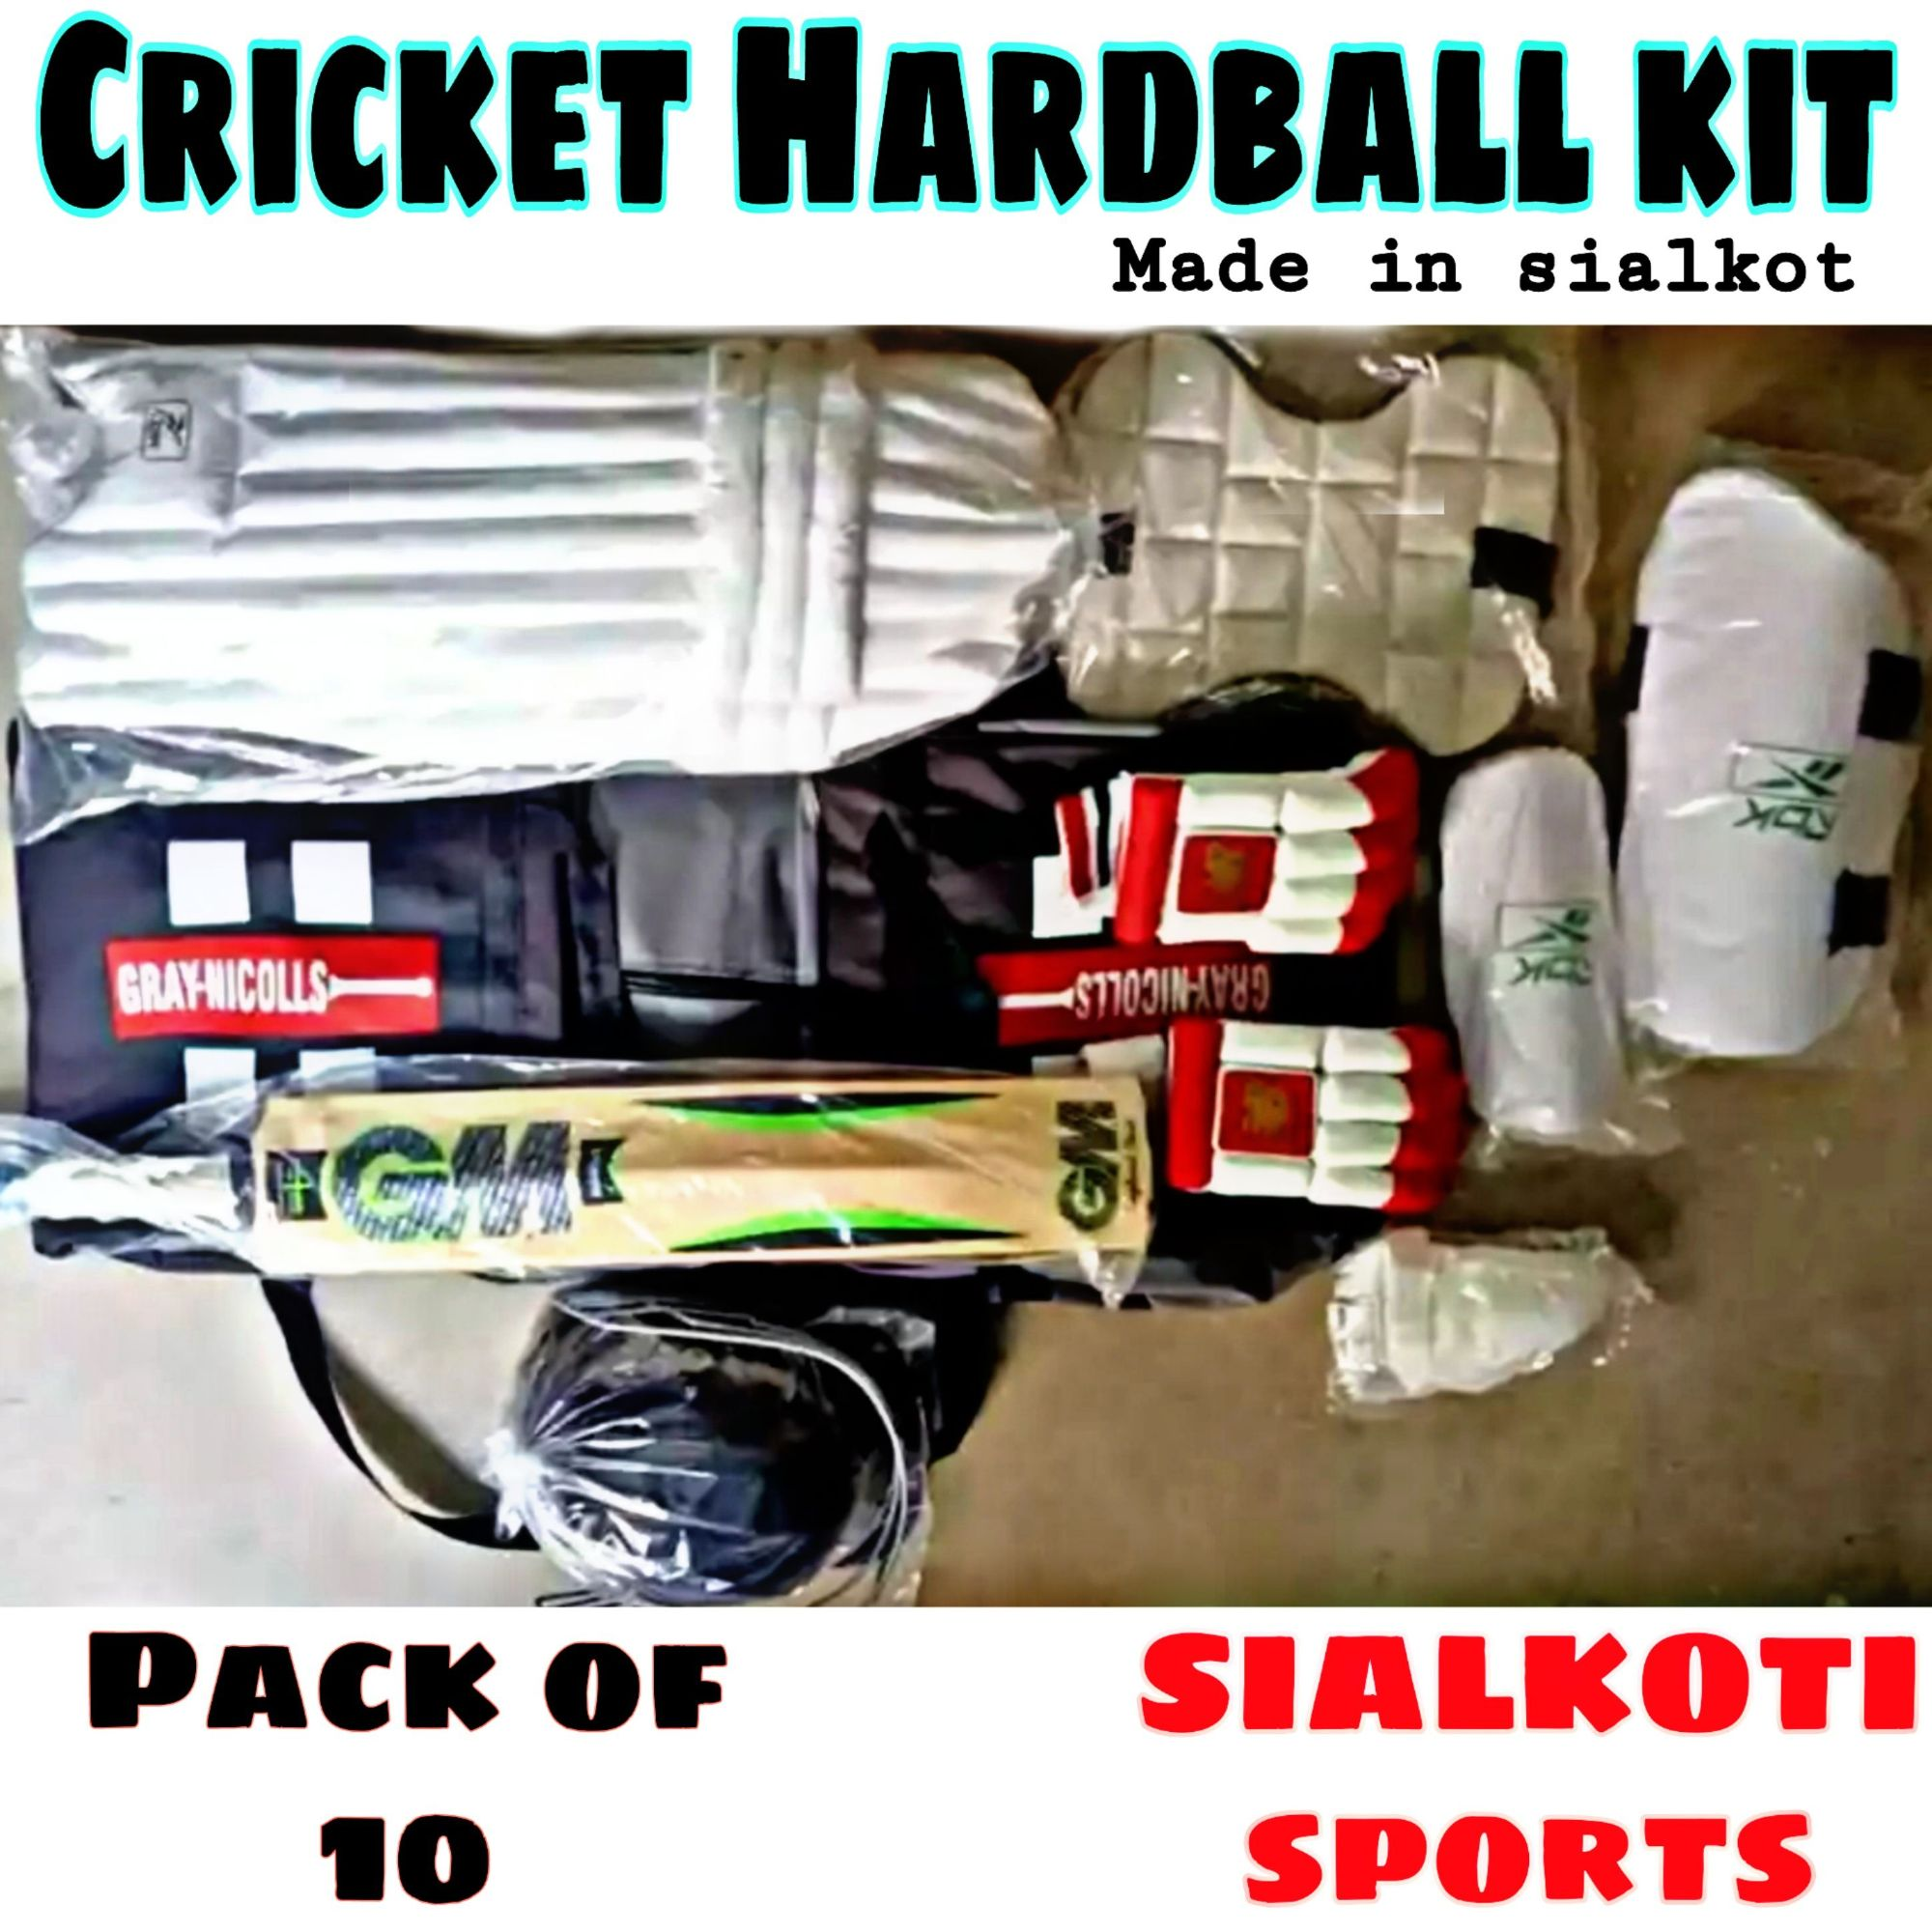 Cricket Hard ball Proffesional Kit (pack of 10) Made in sialkot.